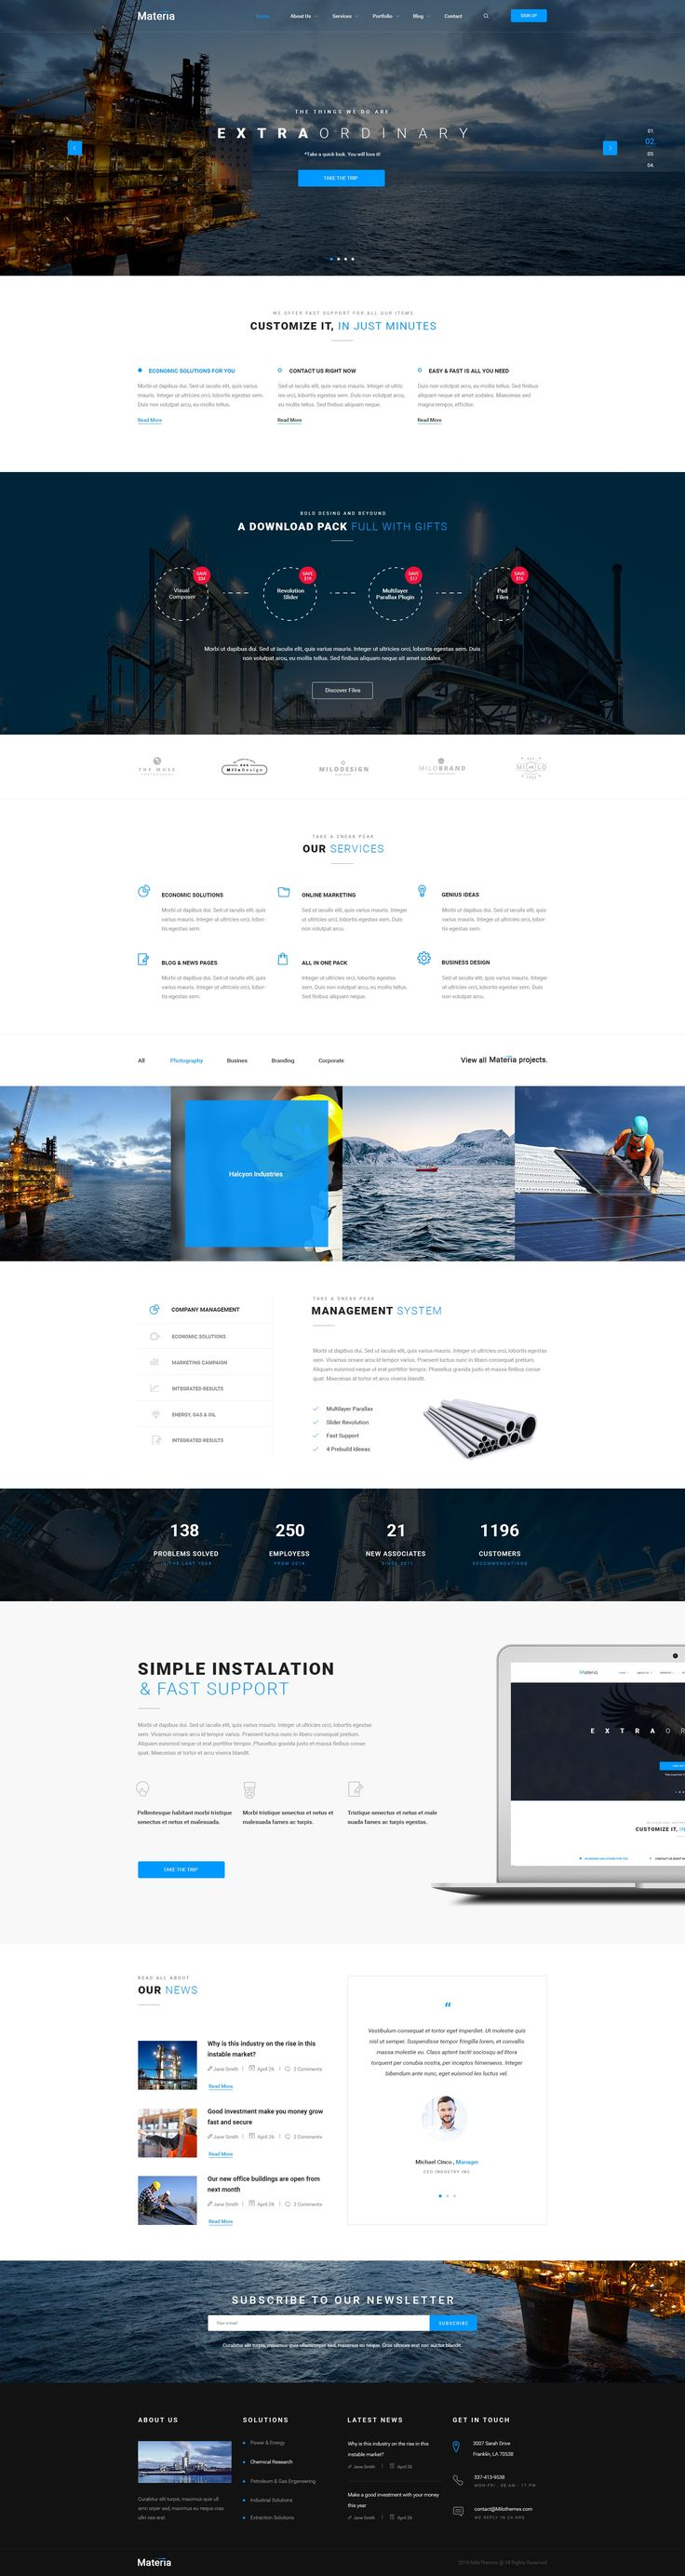 Materia Consortium PSD Template - Download theme here : http://themeforest.net/item/materia-consortium-psd-template/16603700?ref=pxcr